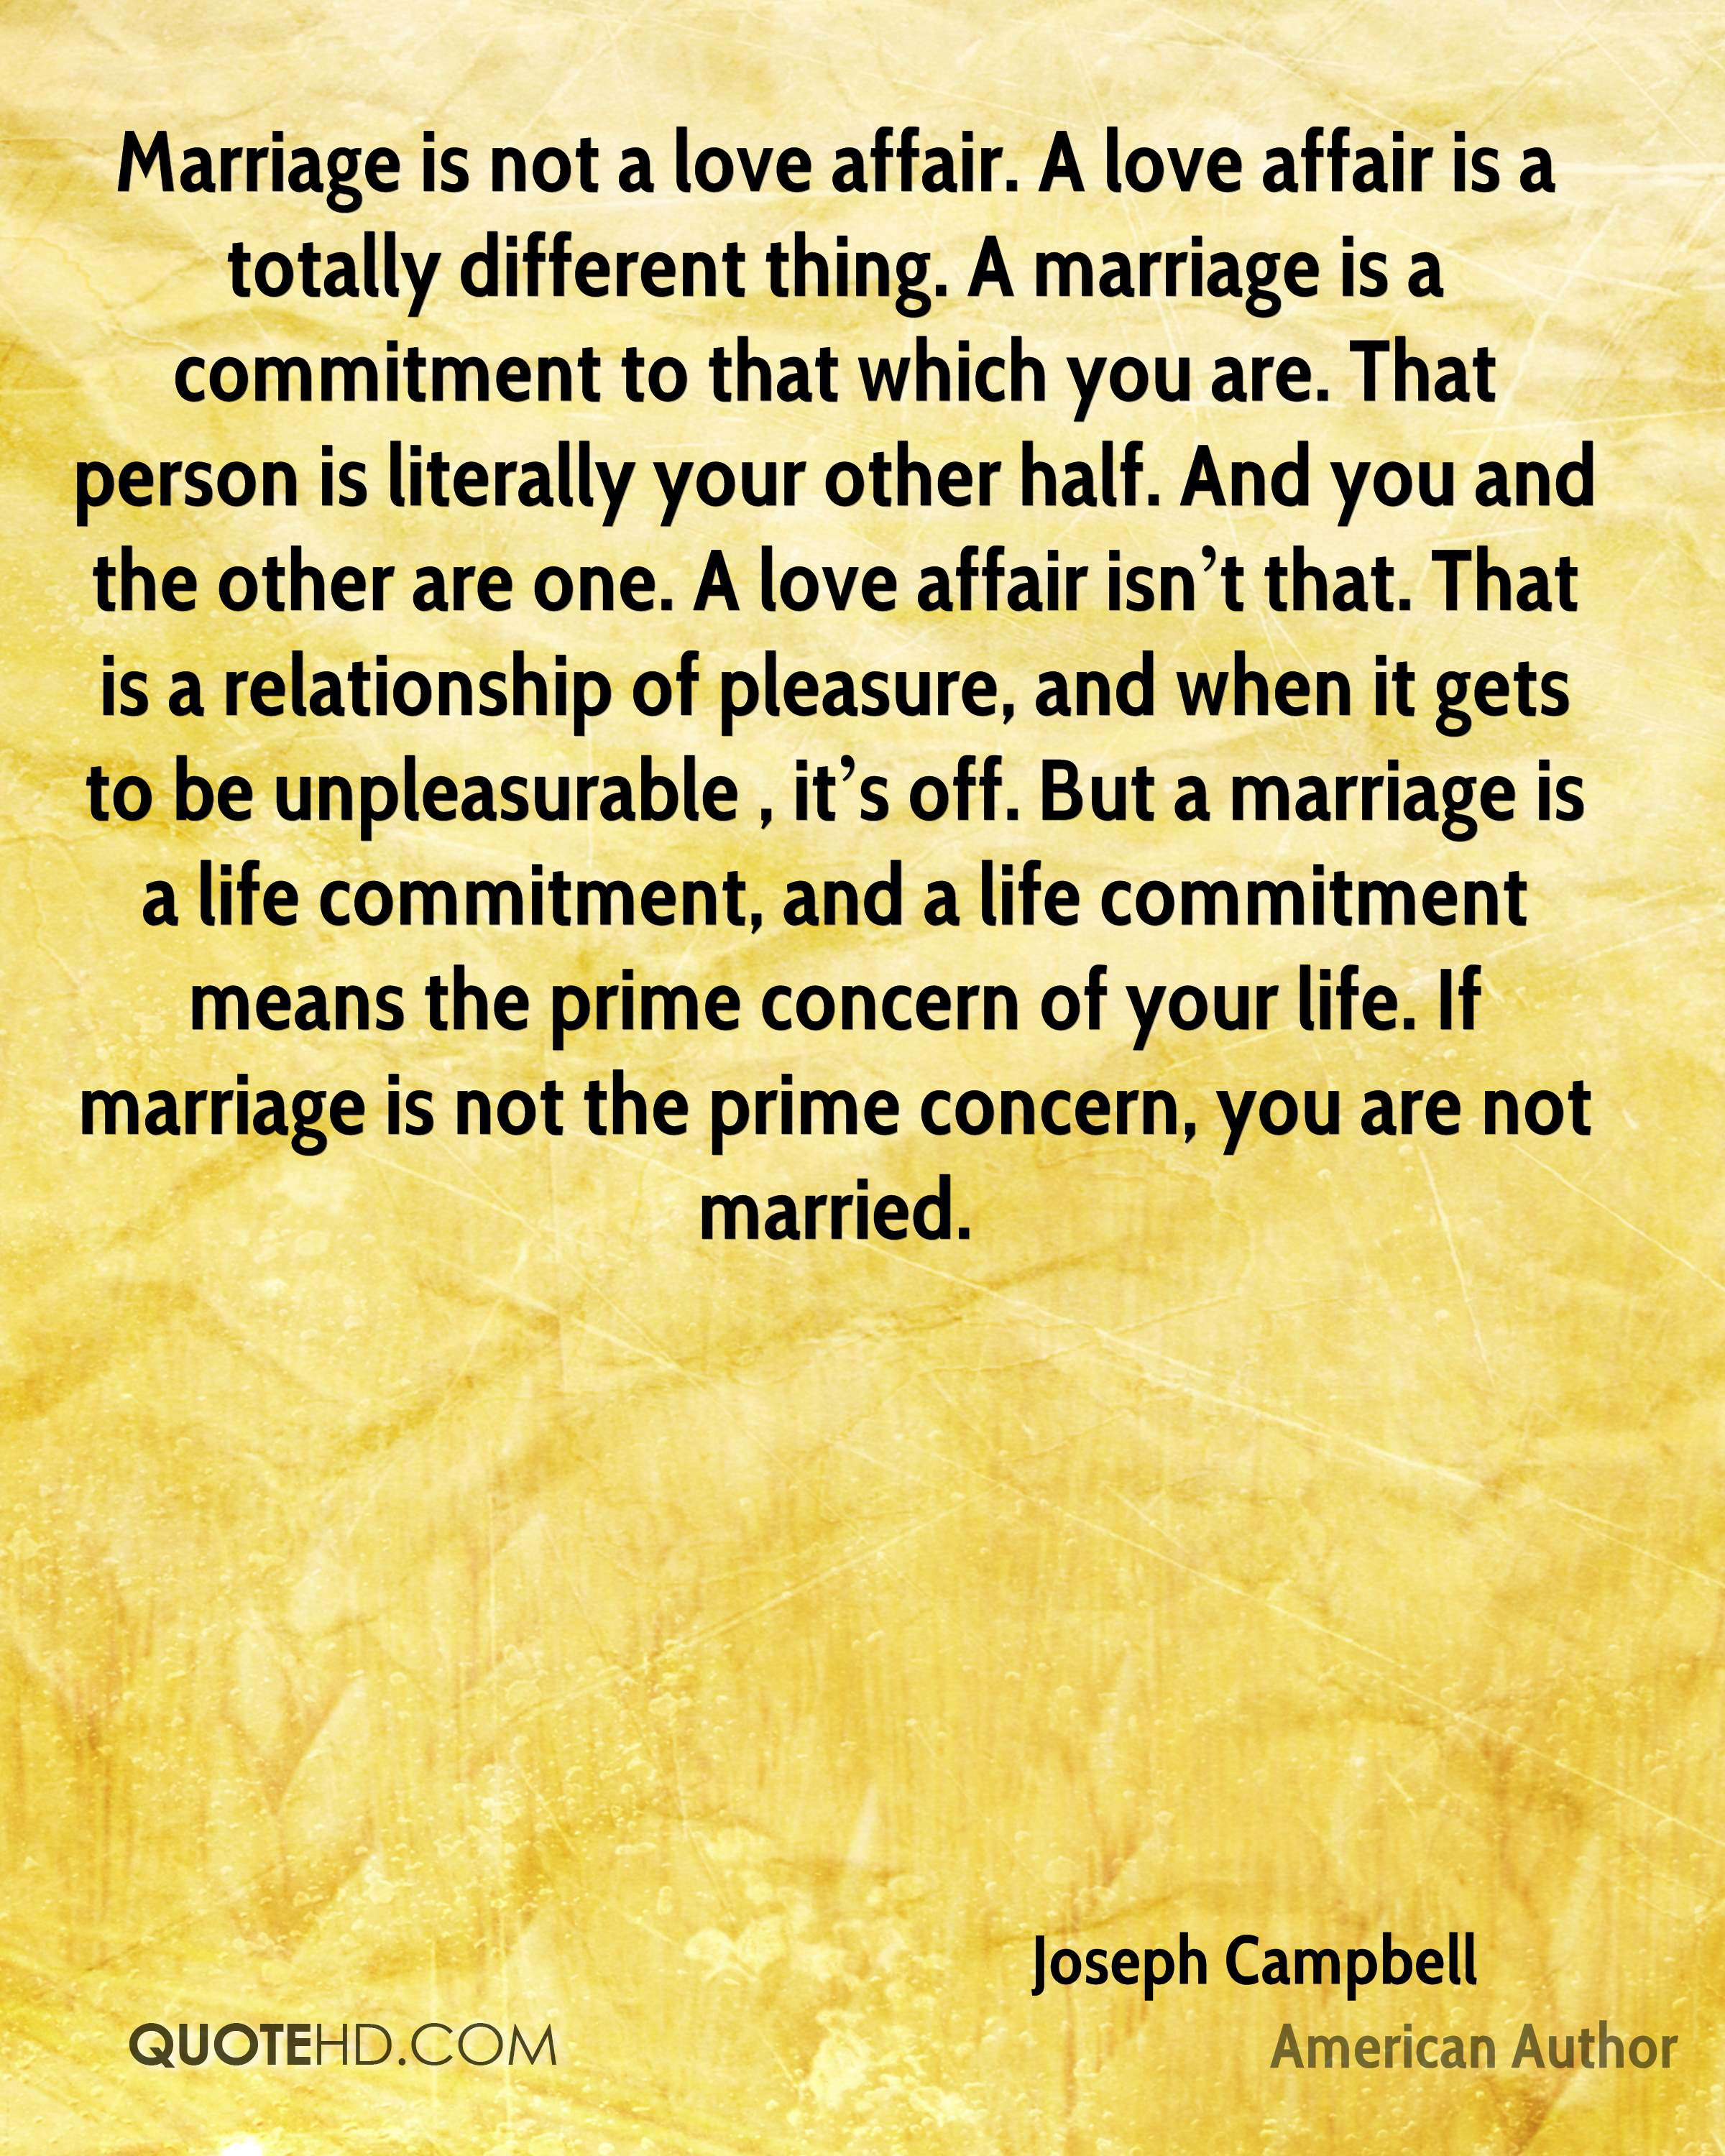 Quotes On Love And Marriage Joseph Campbell Marriage Quotes  Quotehd